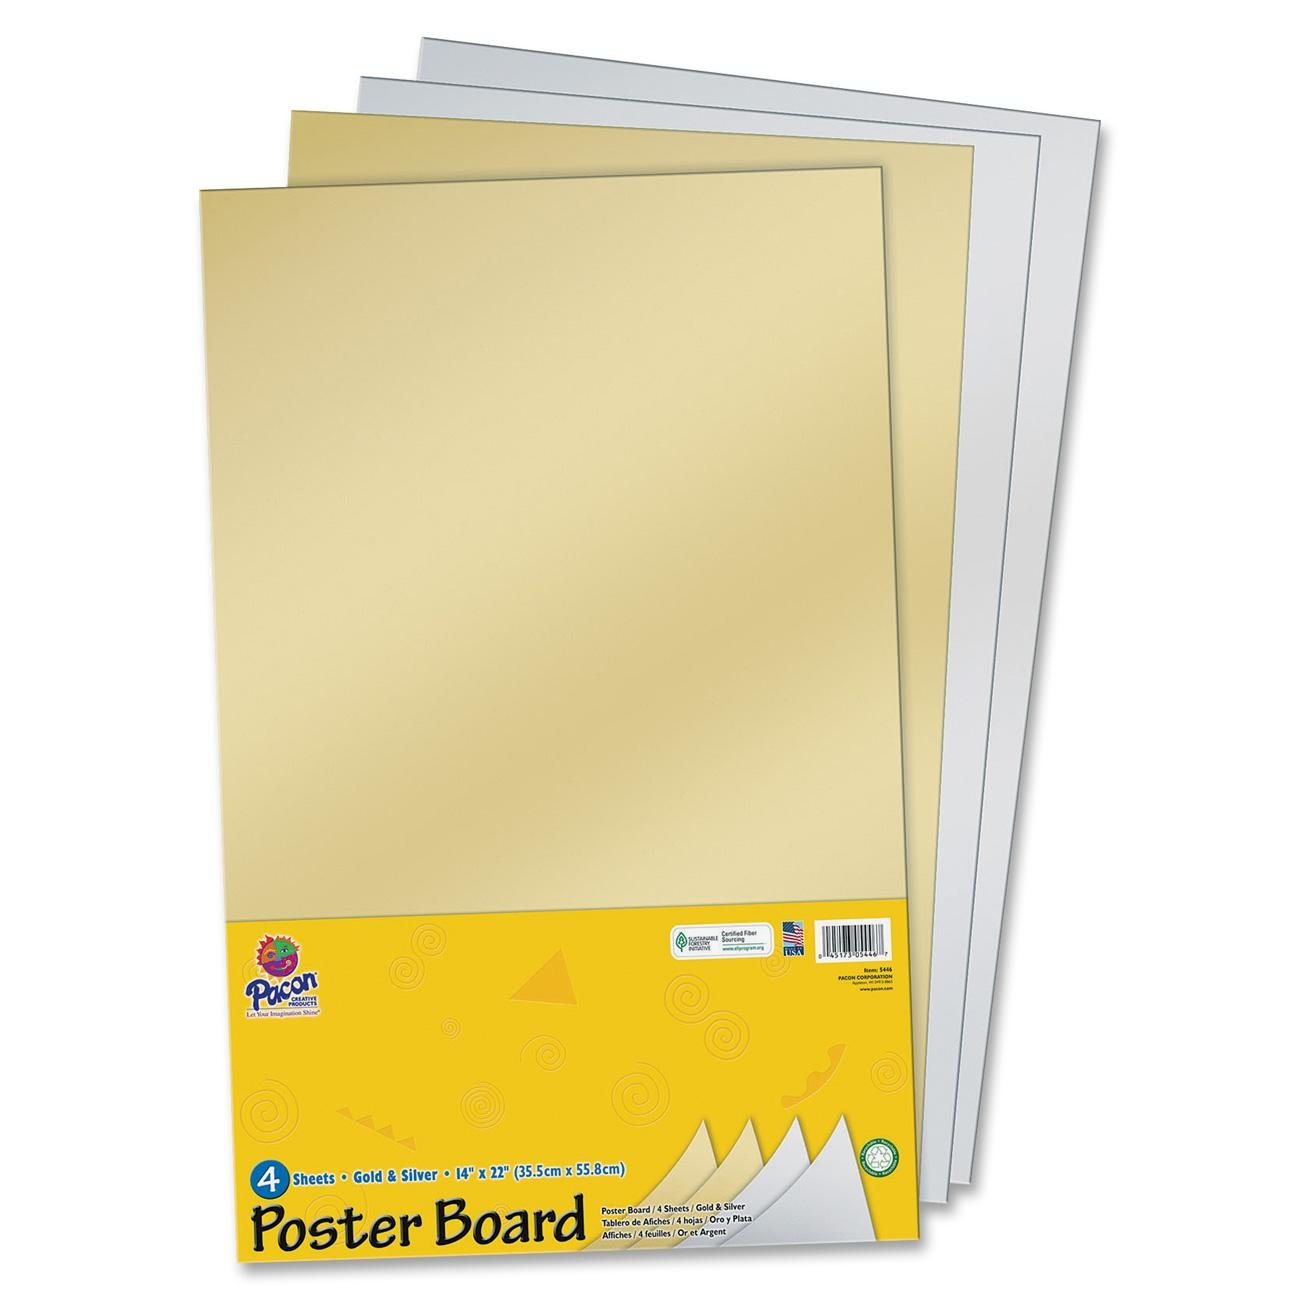 pacon half size sheet poster board pack of 4 gold silver